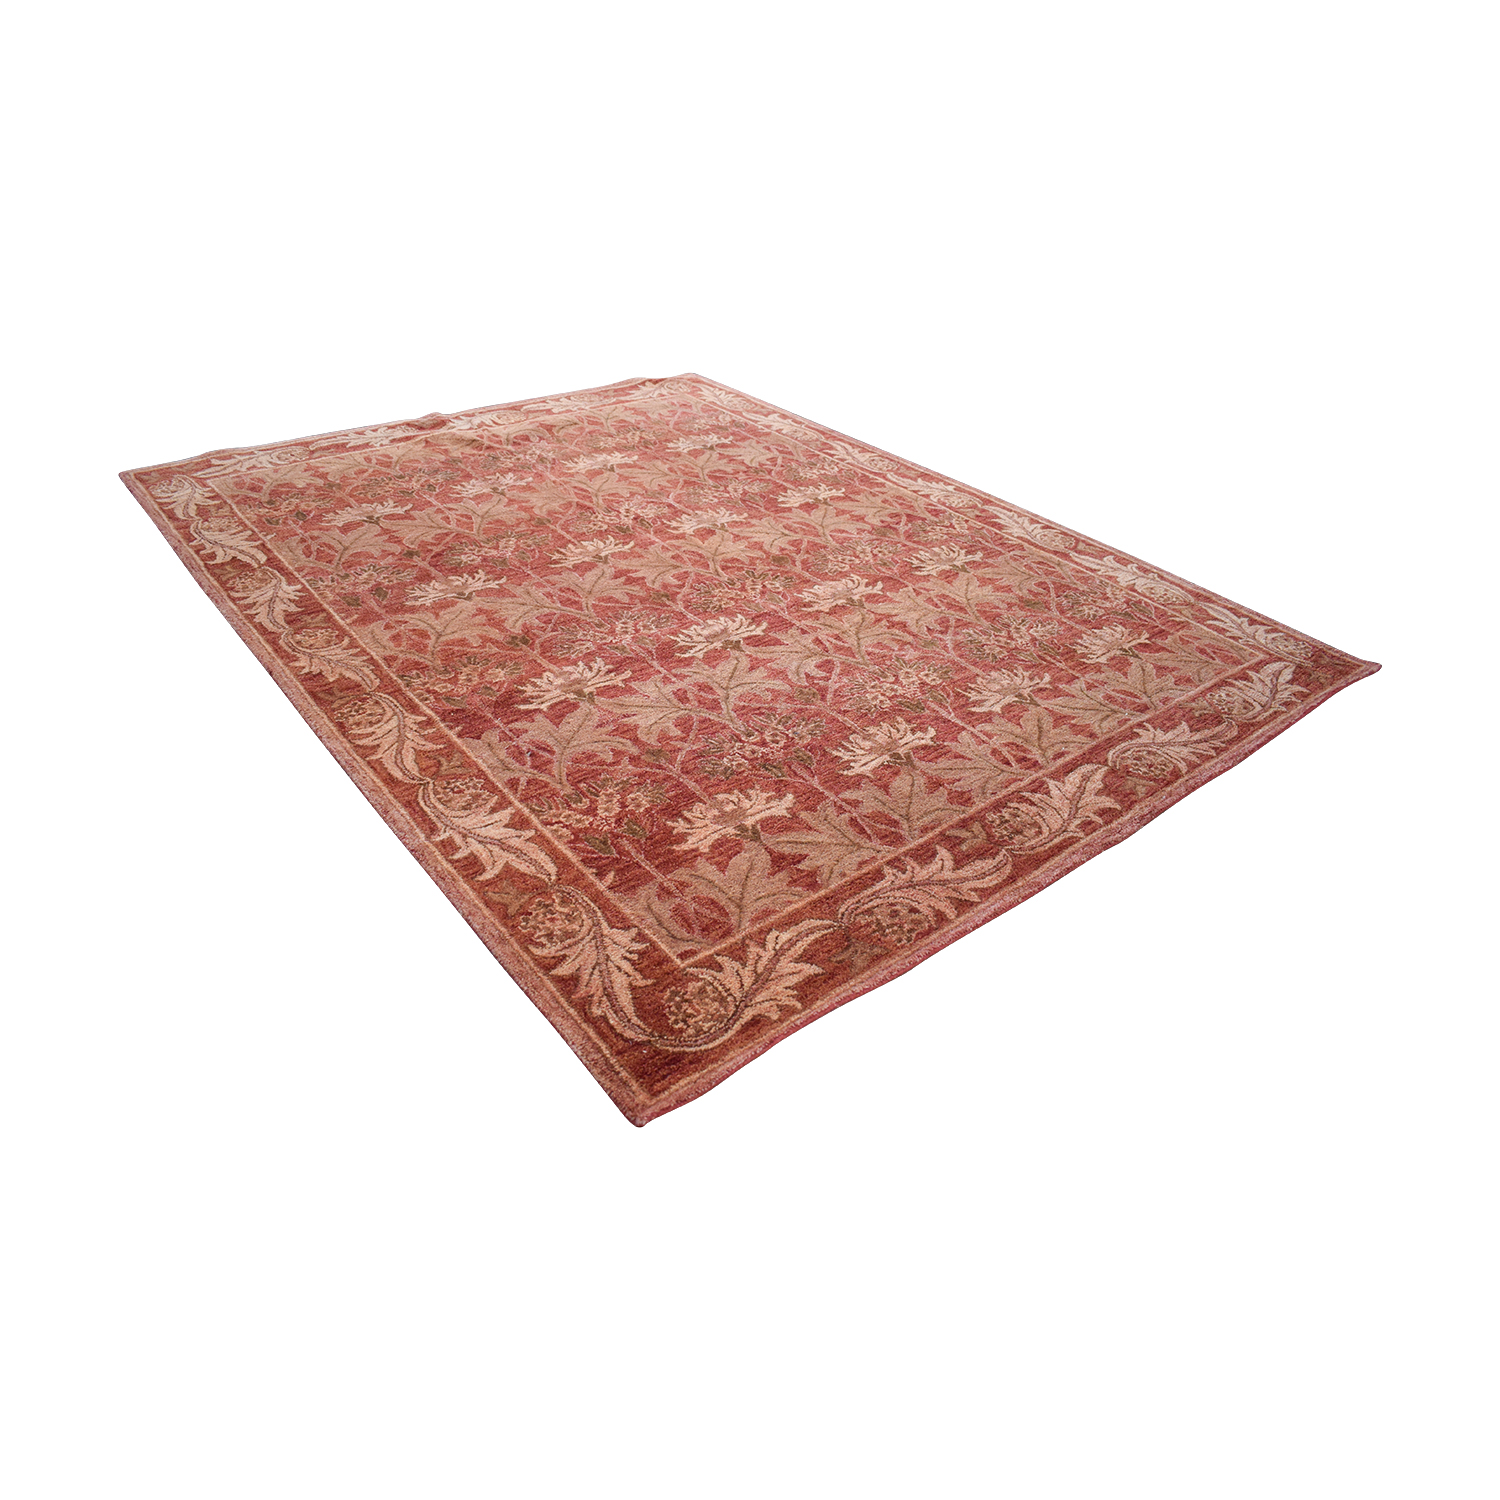 Obeetee Obeetee Red Floral Handtufted Rug coupon